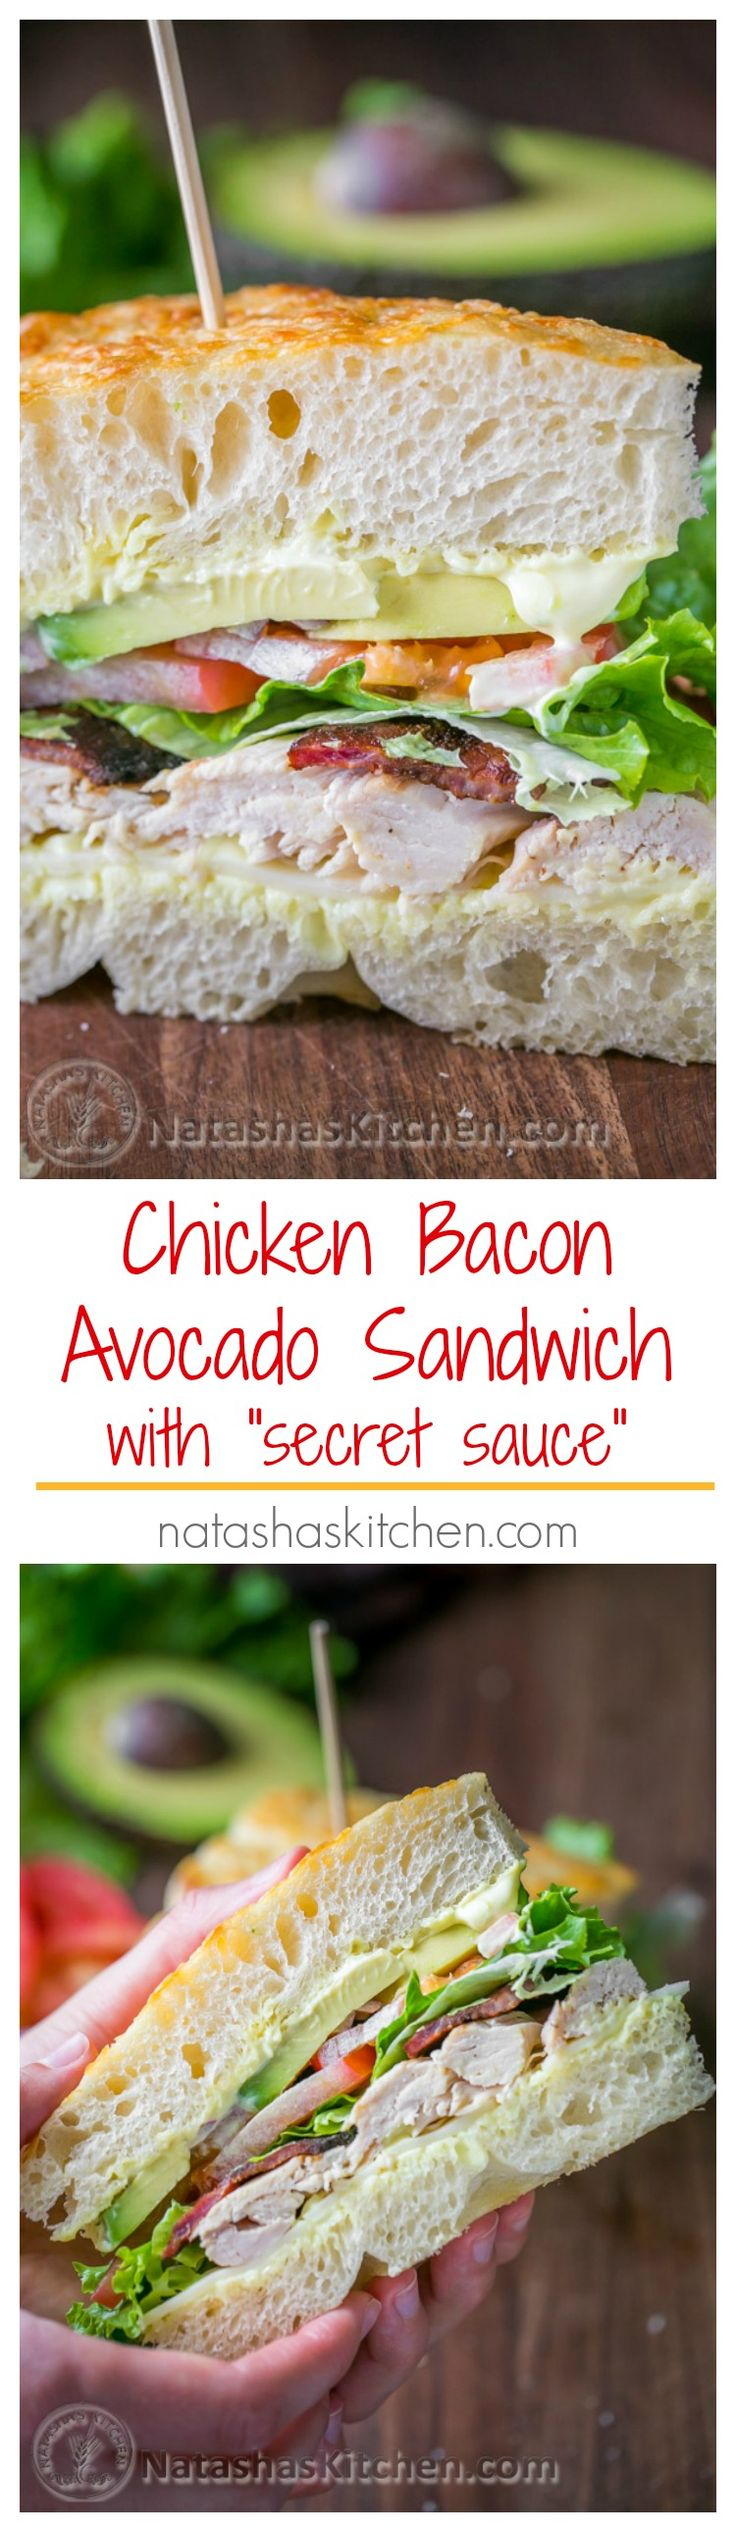 "Chicken Bacon Avocado Sandwich with ""secret sauce"" - A Kneaders Bakery Copycat Recipe 